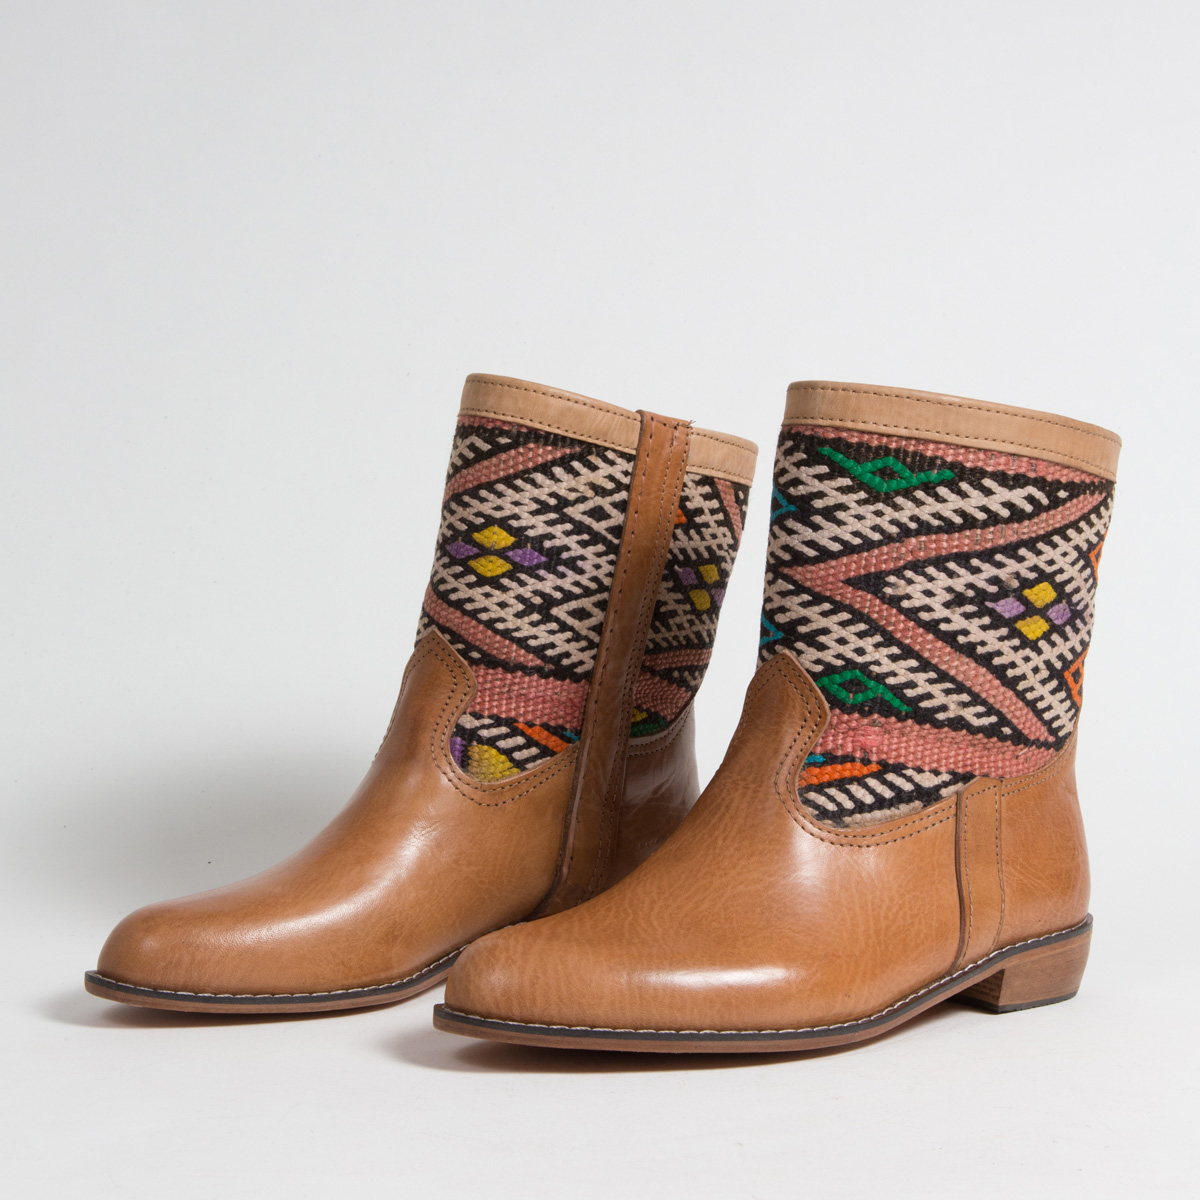 Bottines Kilim - images/kilim/bottines/loc7-01-41-kilim-artisanat-cuir-ethnique-marocaine-bottine-femme-s.jpg